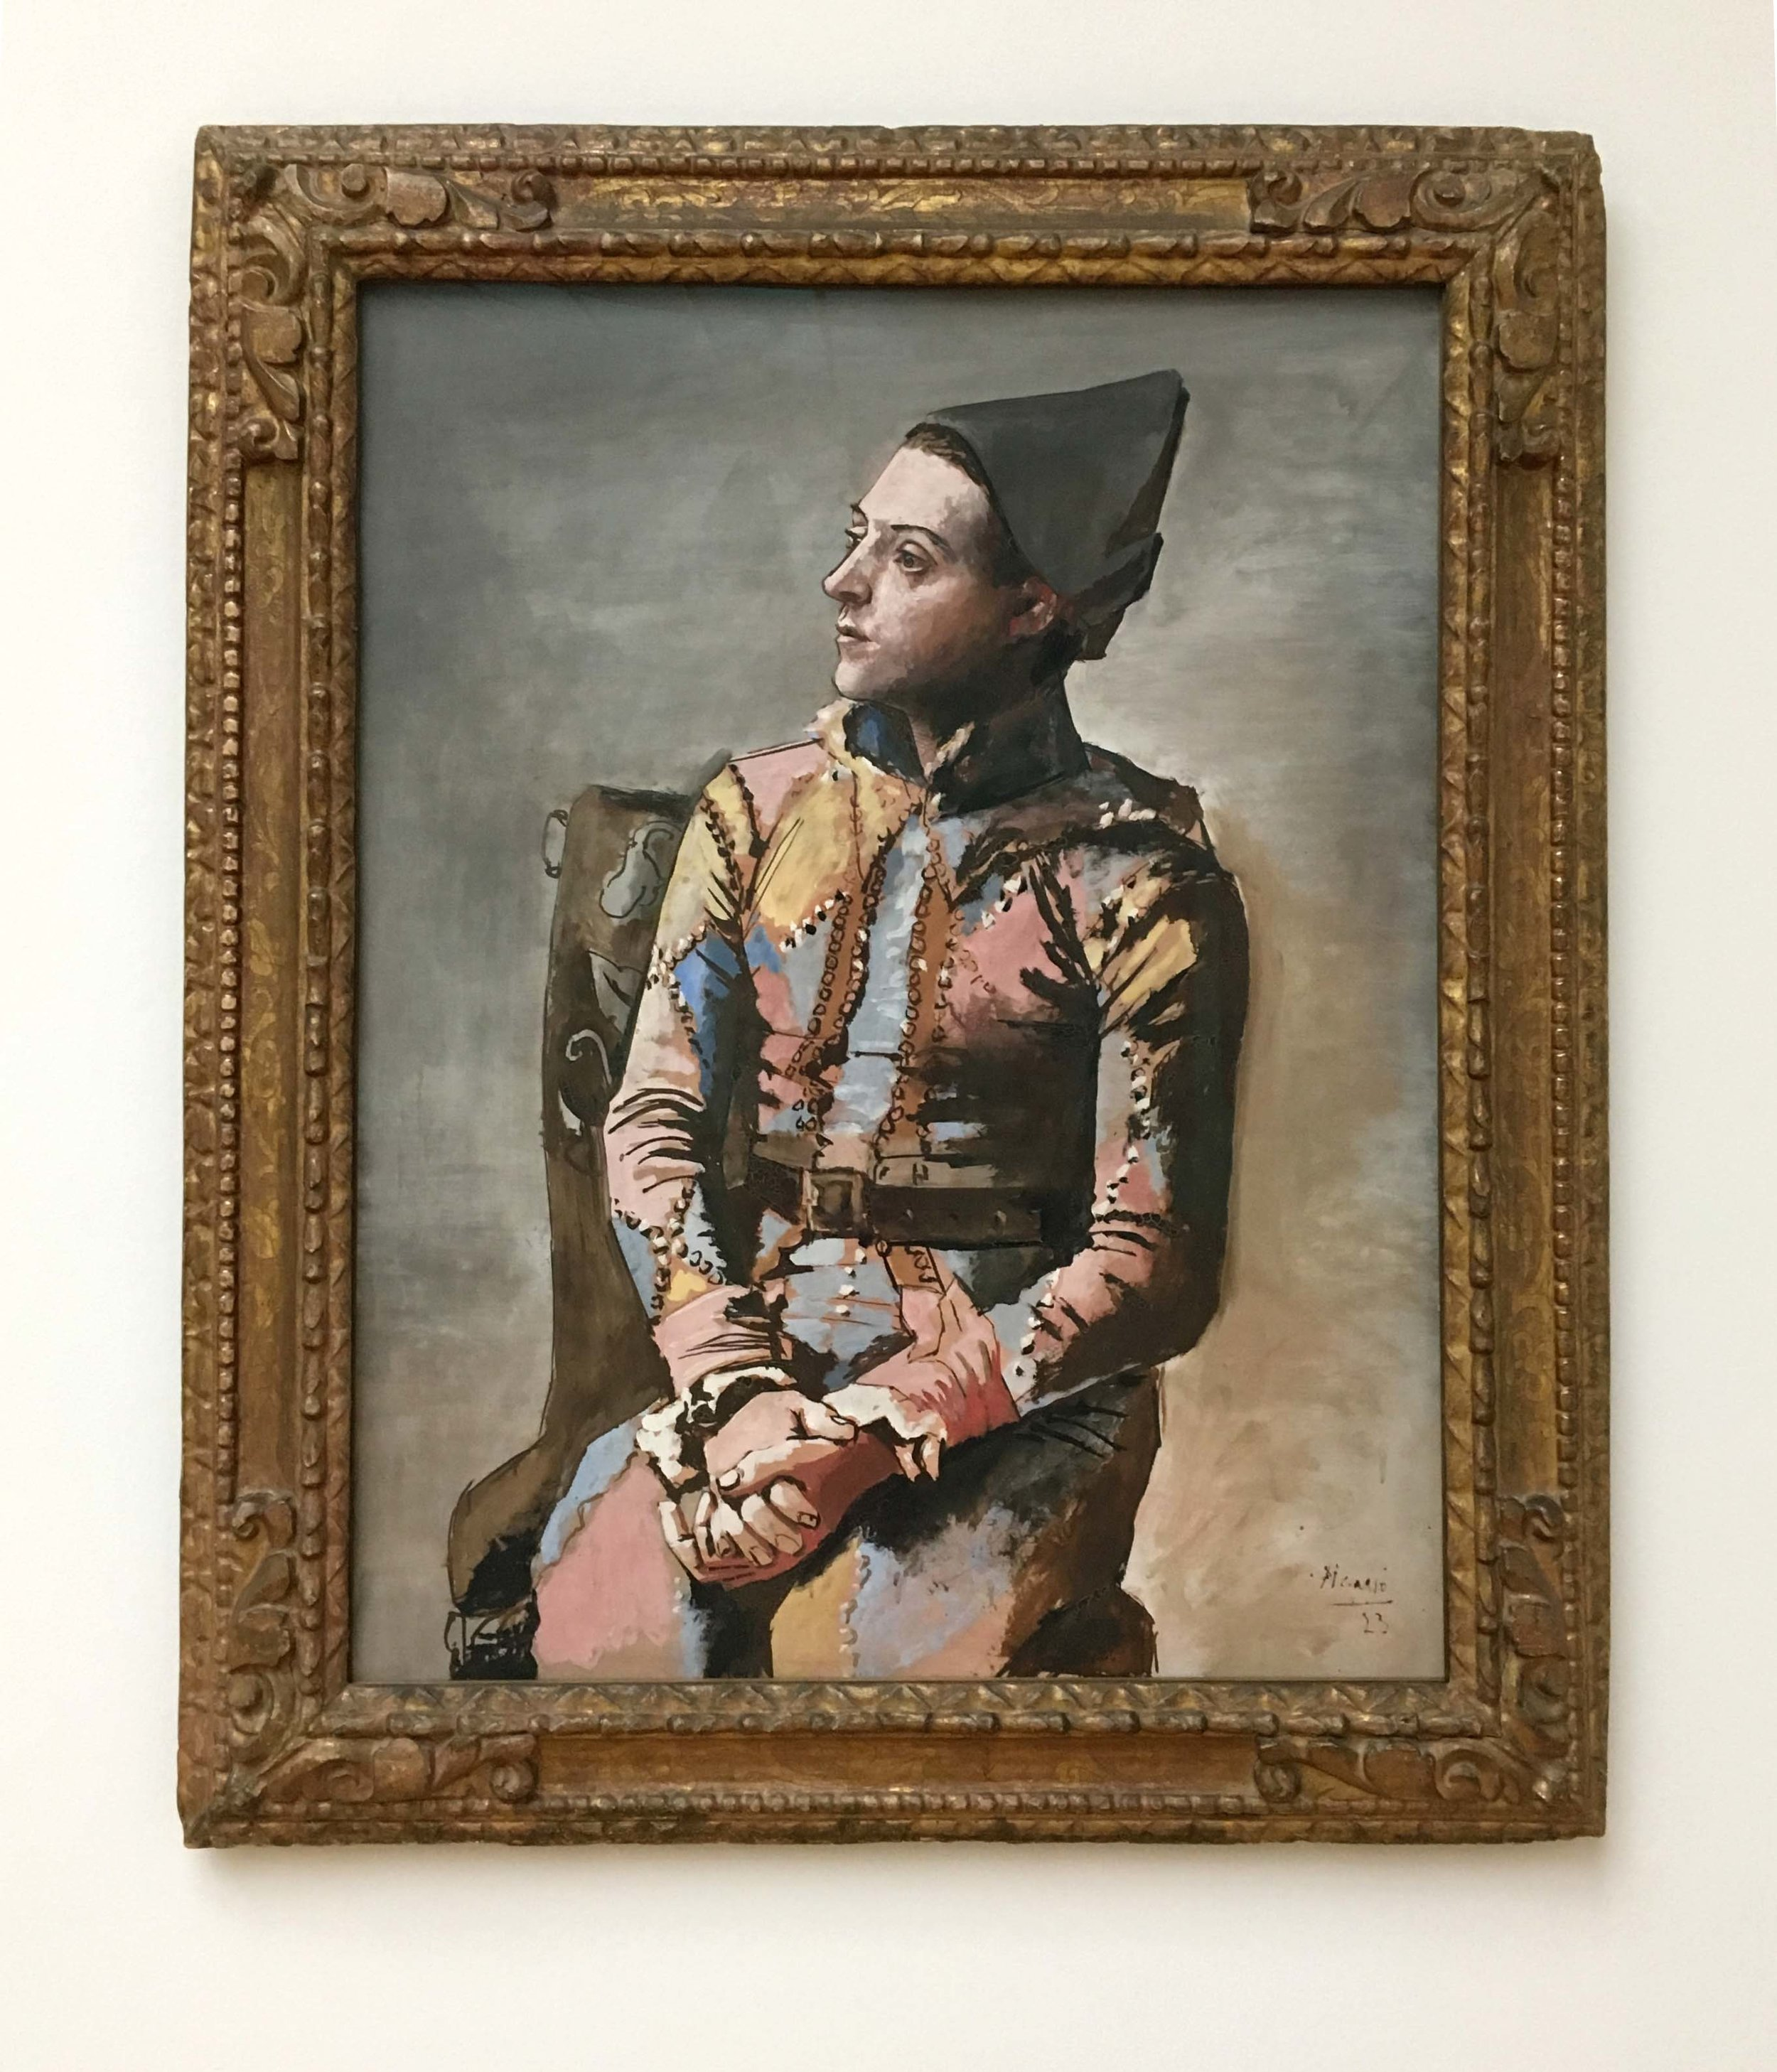 Pablo Picasso, Seated Harlequin, 1923